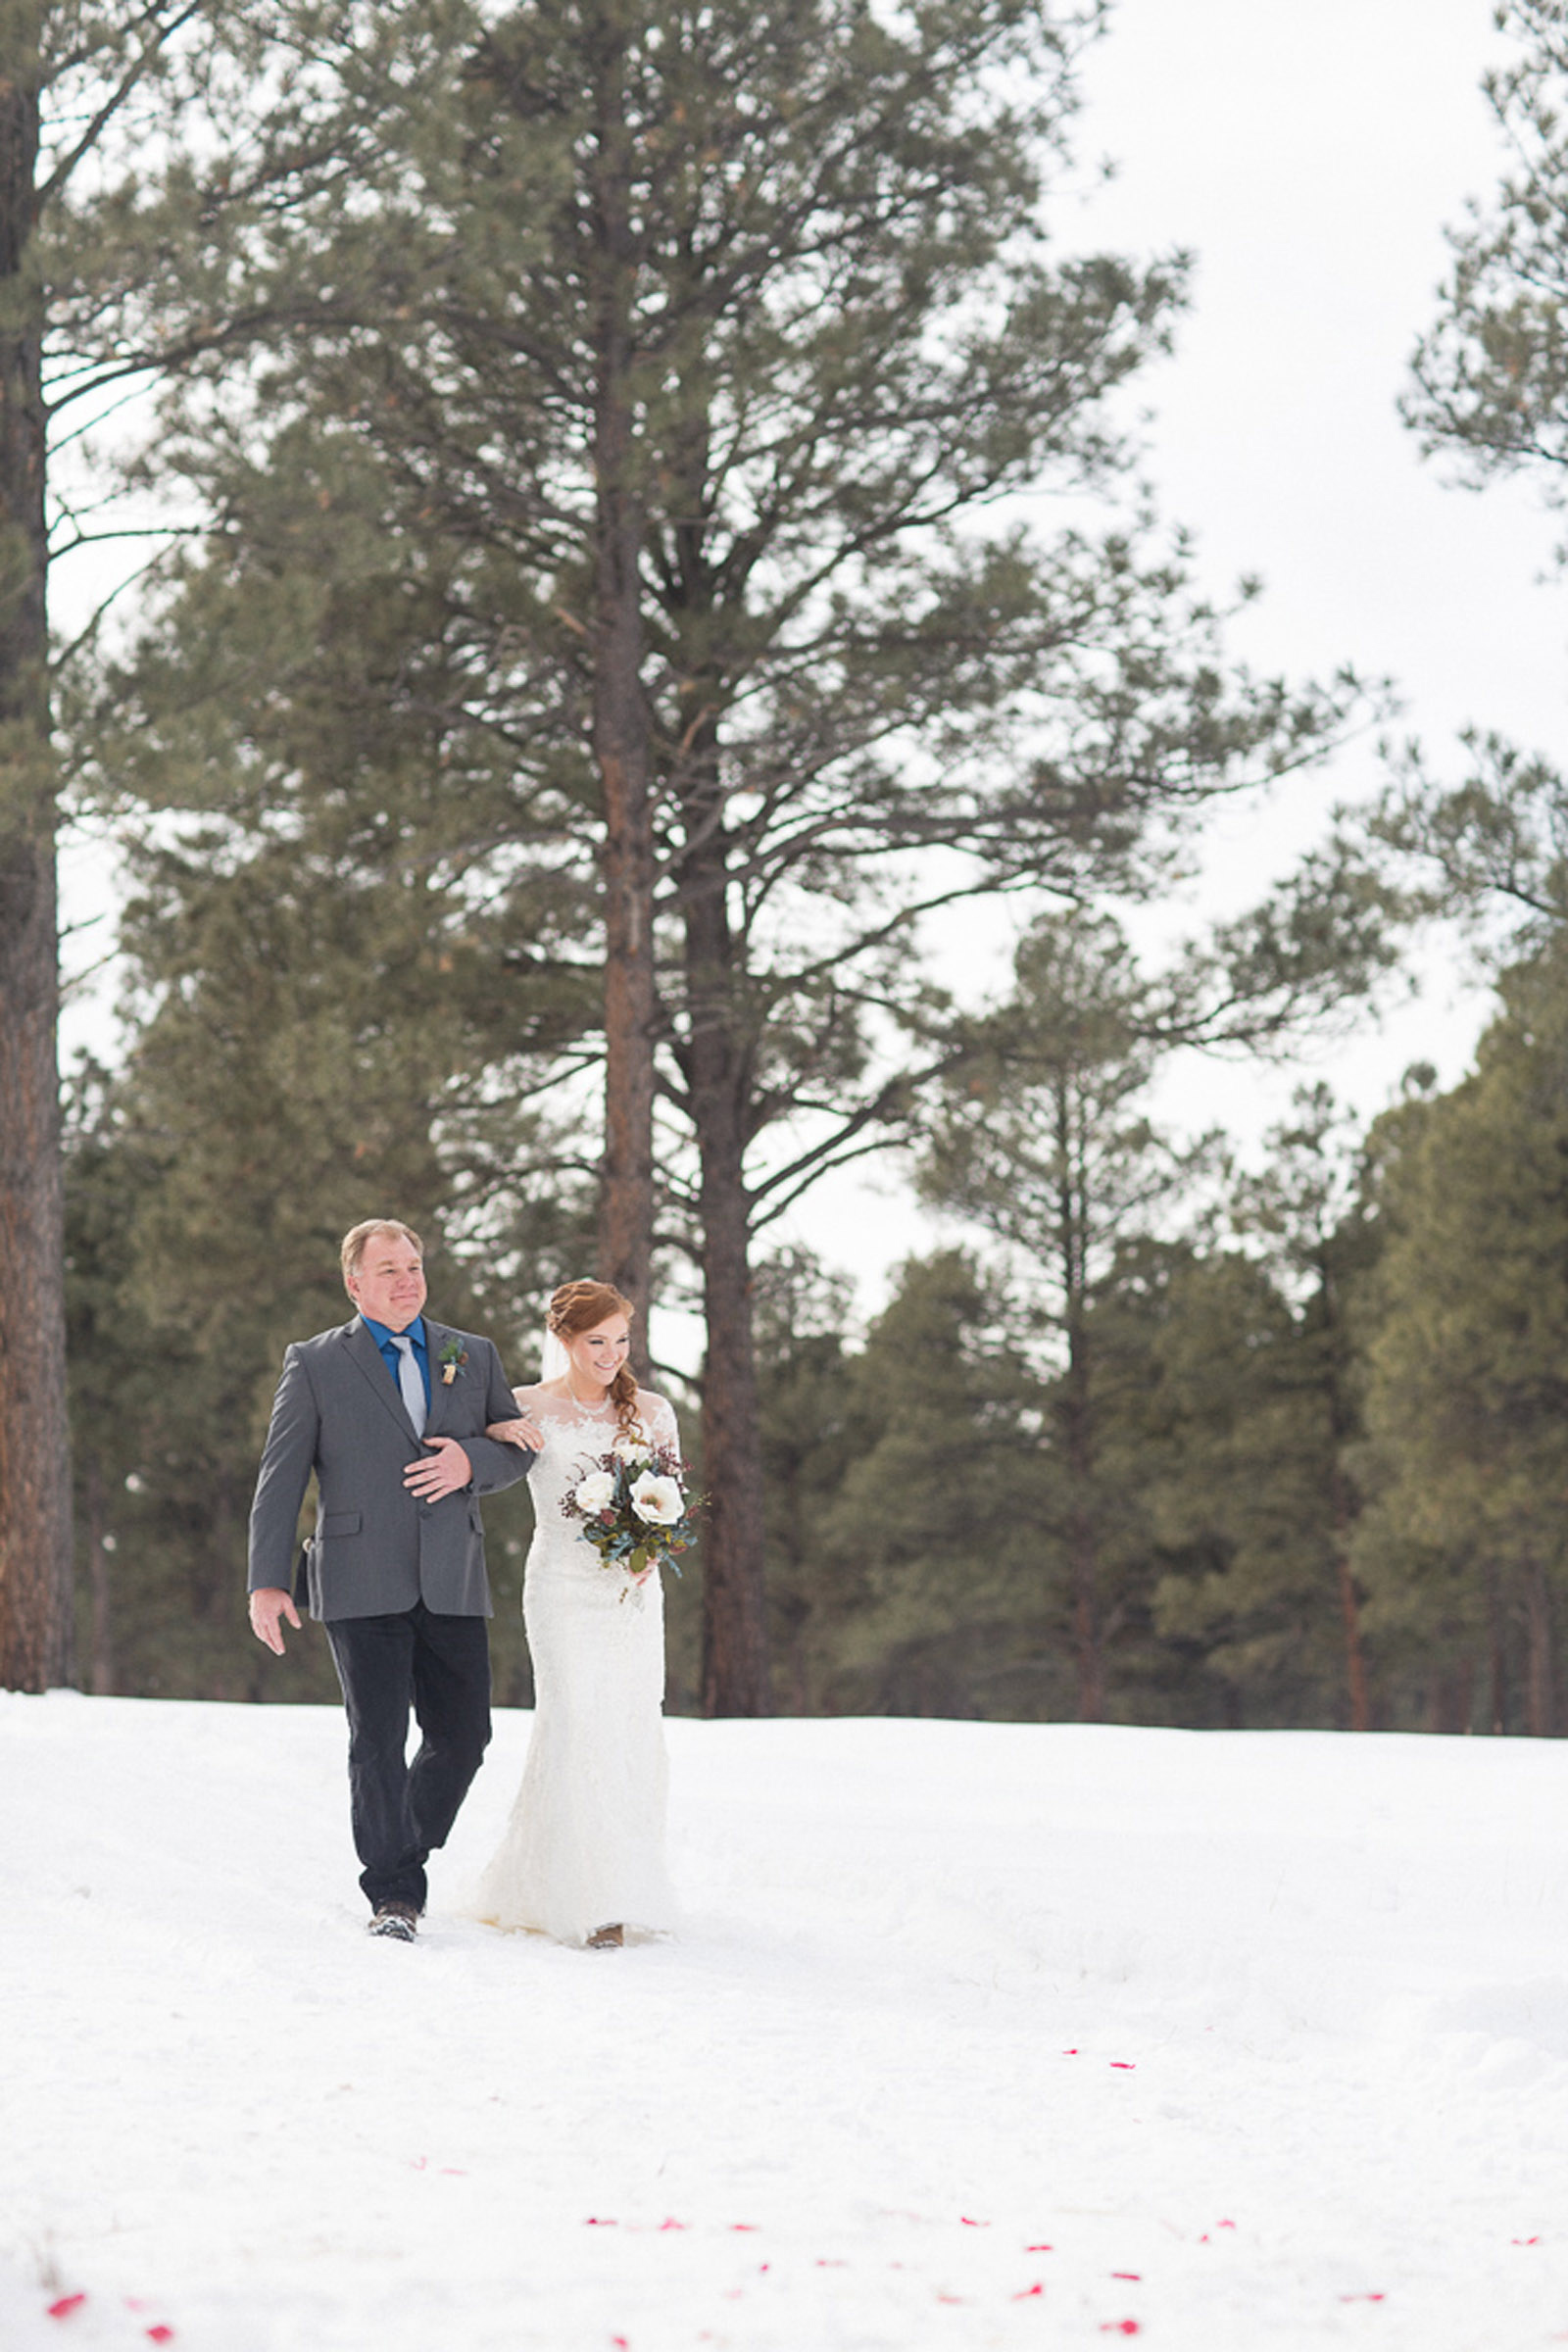 088-wedding-ceremony-in-pagosa-springs-wedding-photographer-snow-winter-wedding